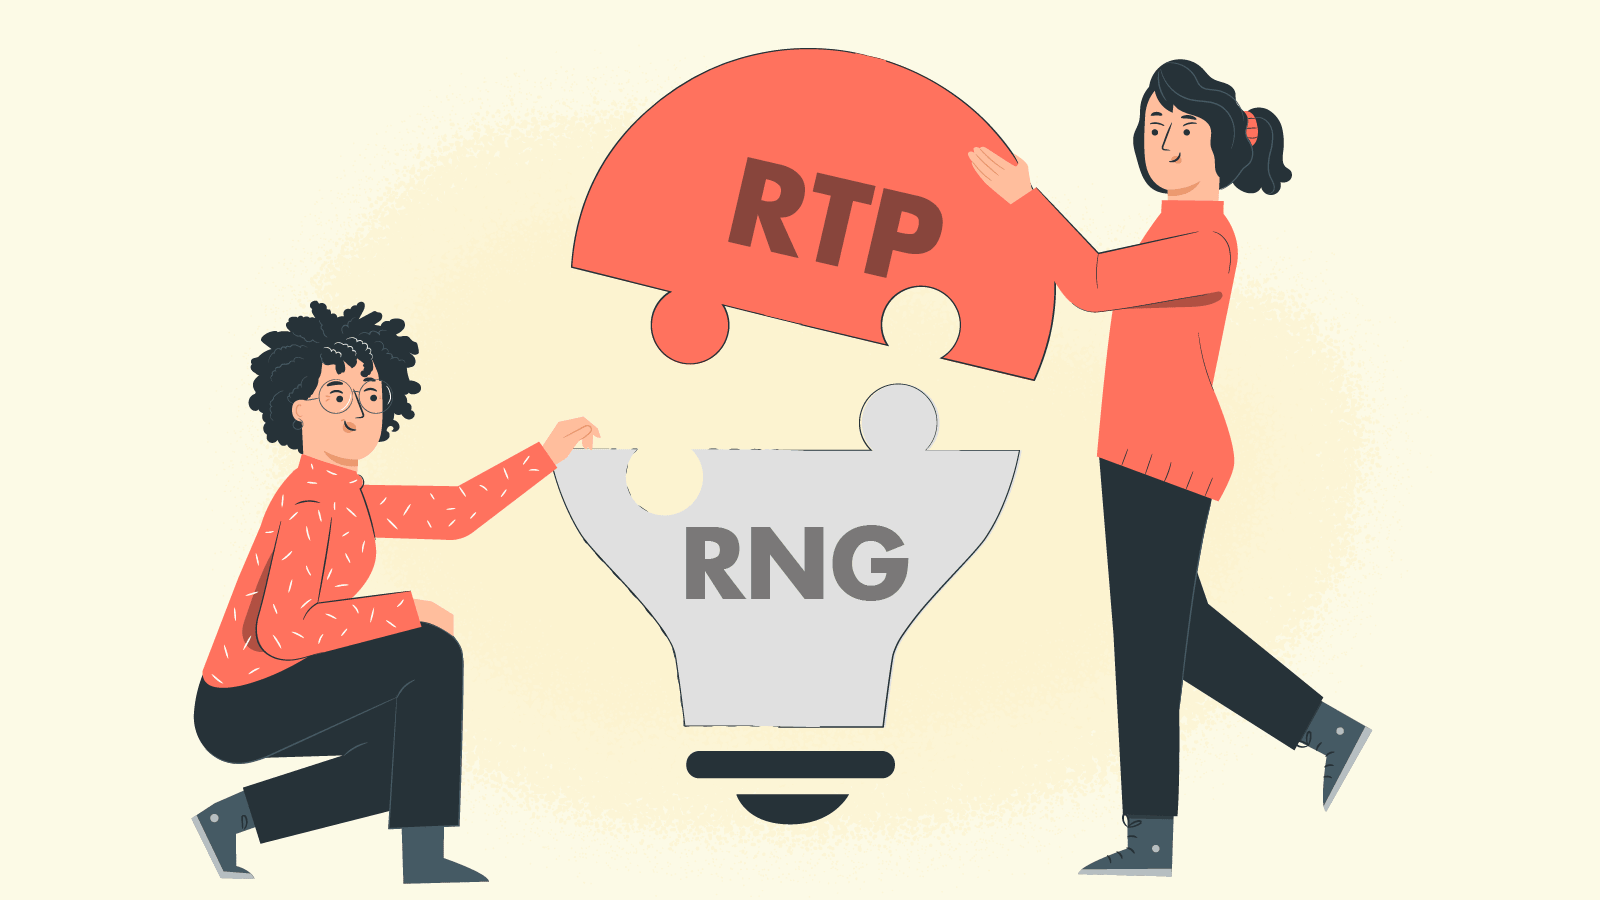 Is there any connection between RNG and RTP